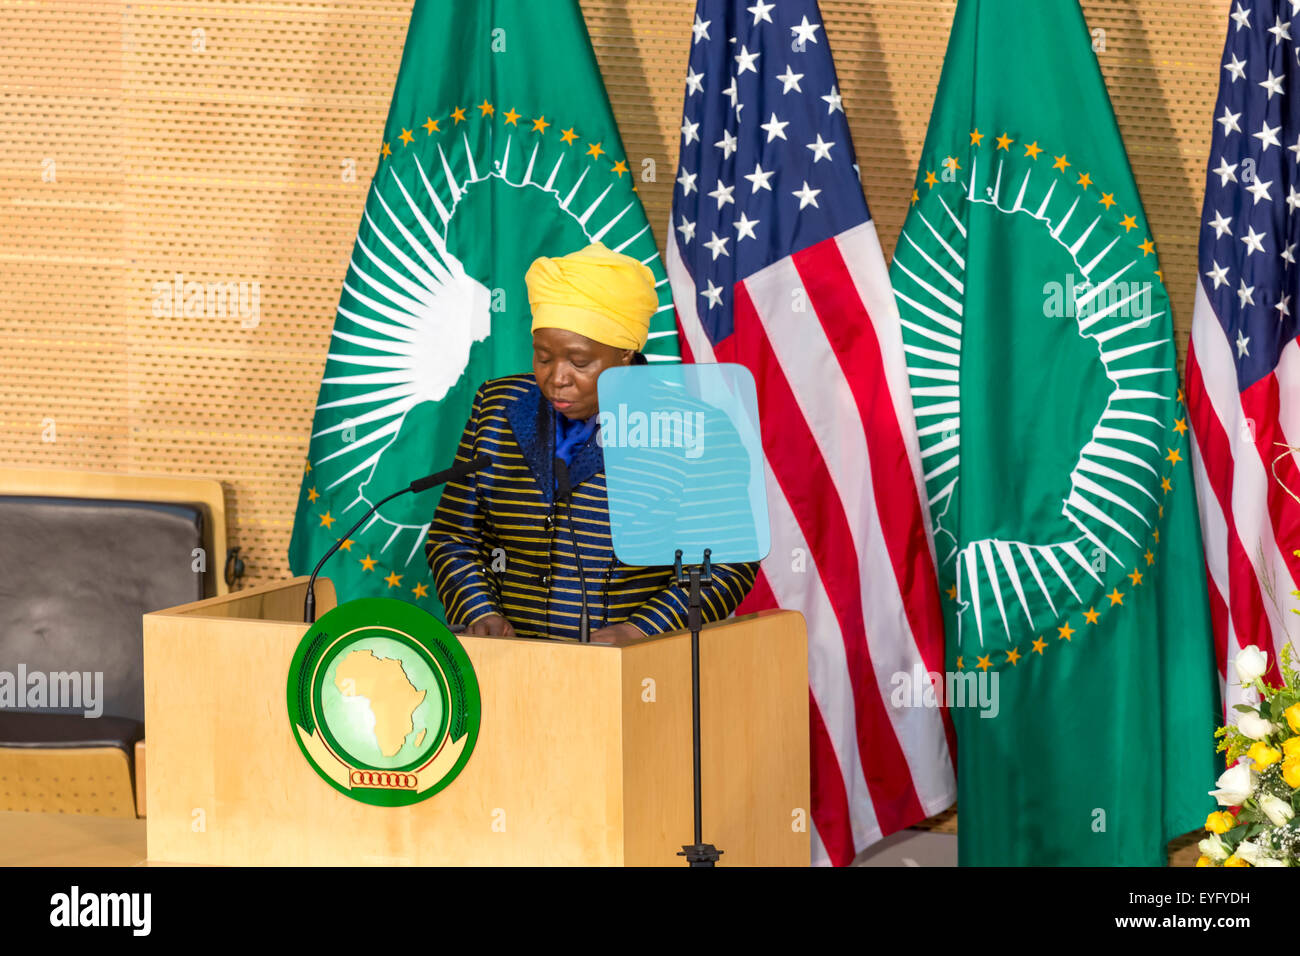 Addis Ababa, Ethiopia. 28th July, 2015. H.E. Dr. Dlamini Zuma, Chairperson of the AUC, delivers a keynote speech - Stock Image